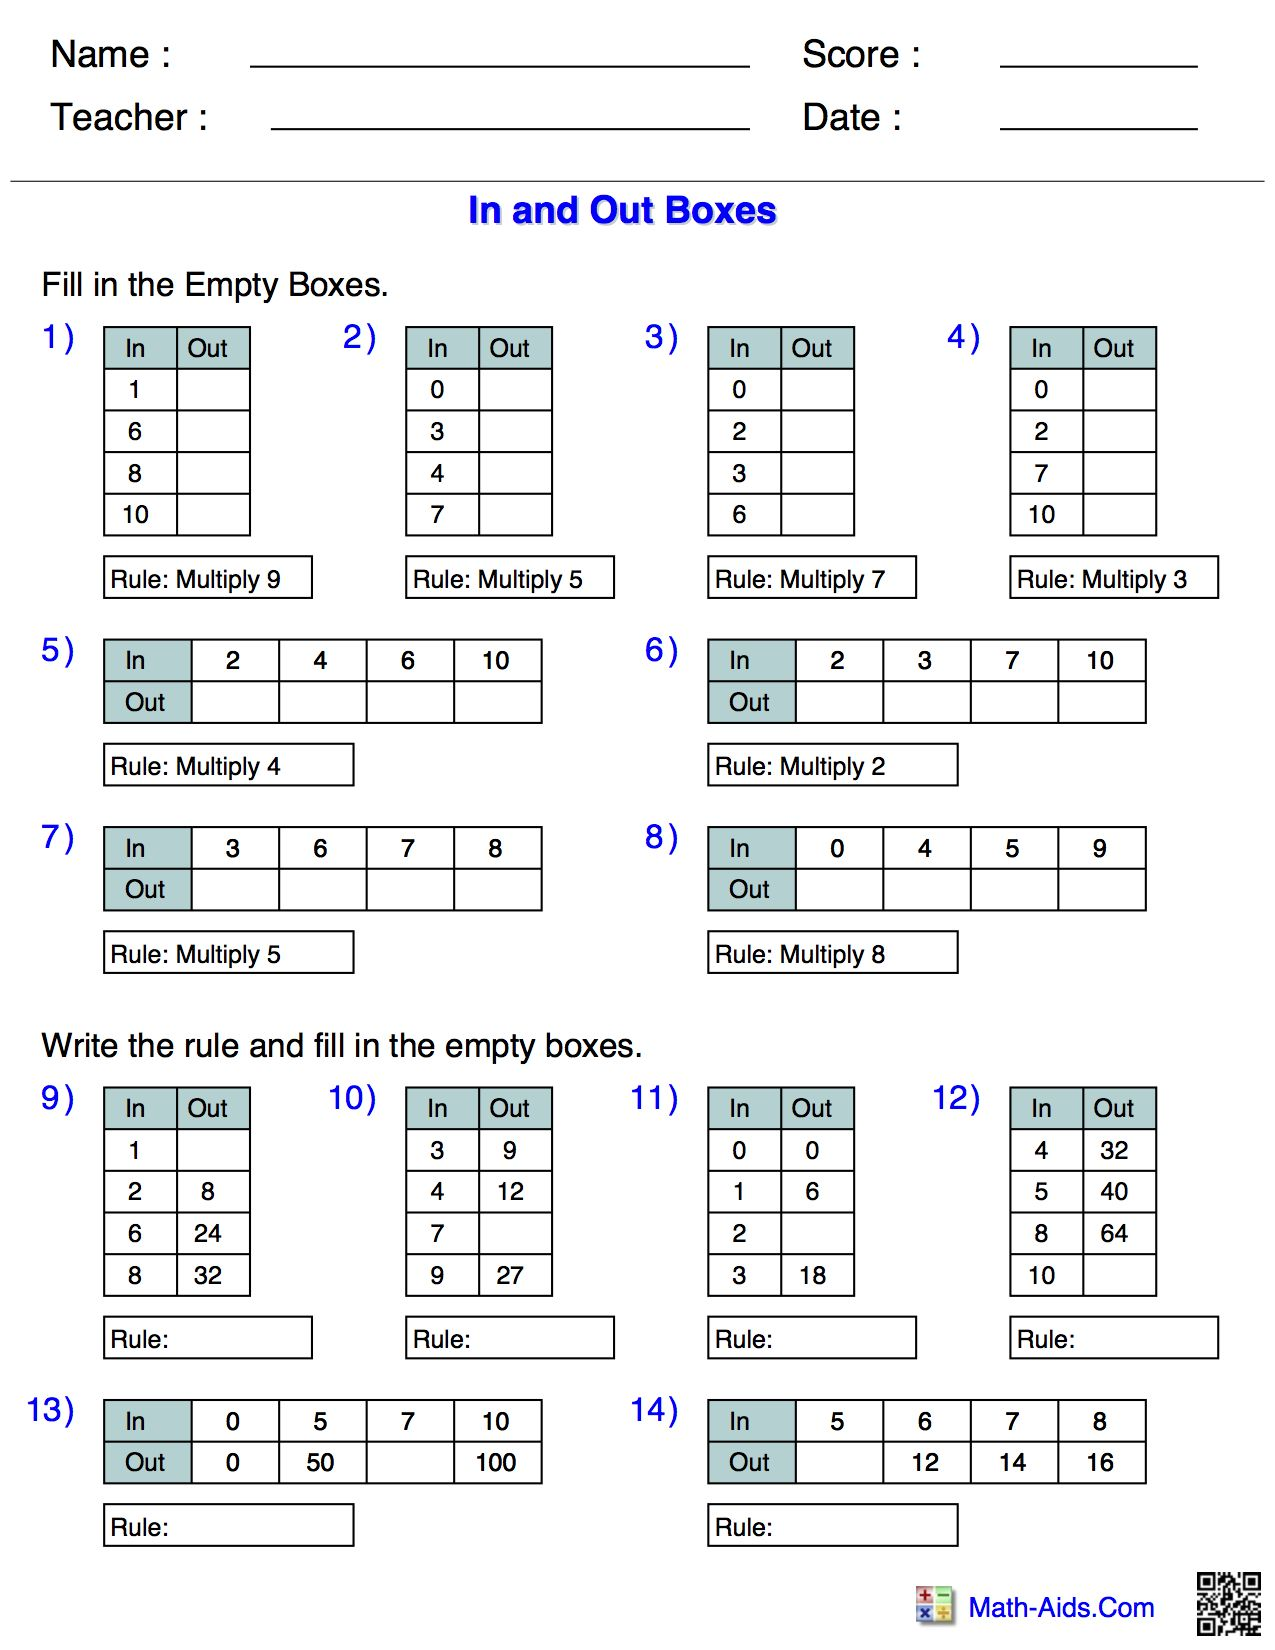 In and out tables for multiplication - FREE http://www.math-aids.com ...